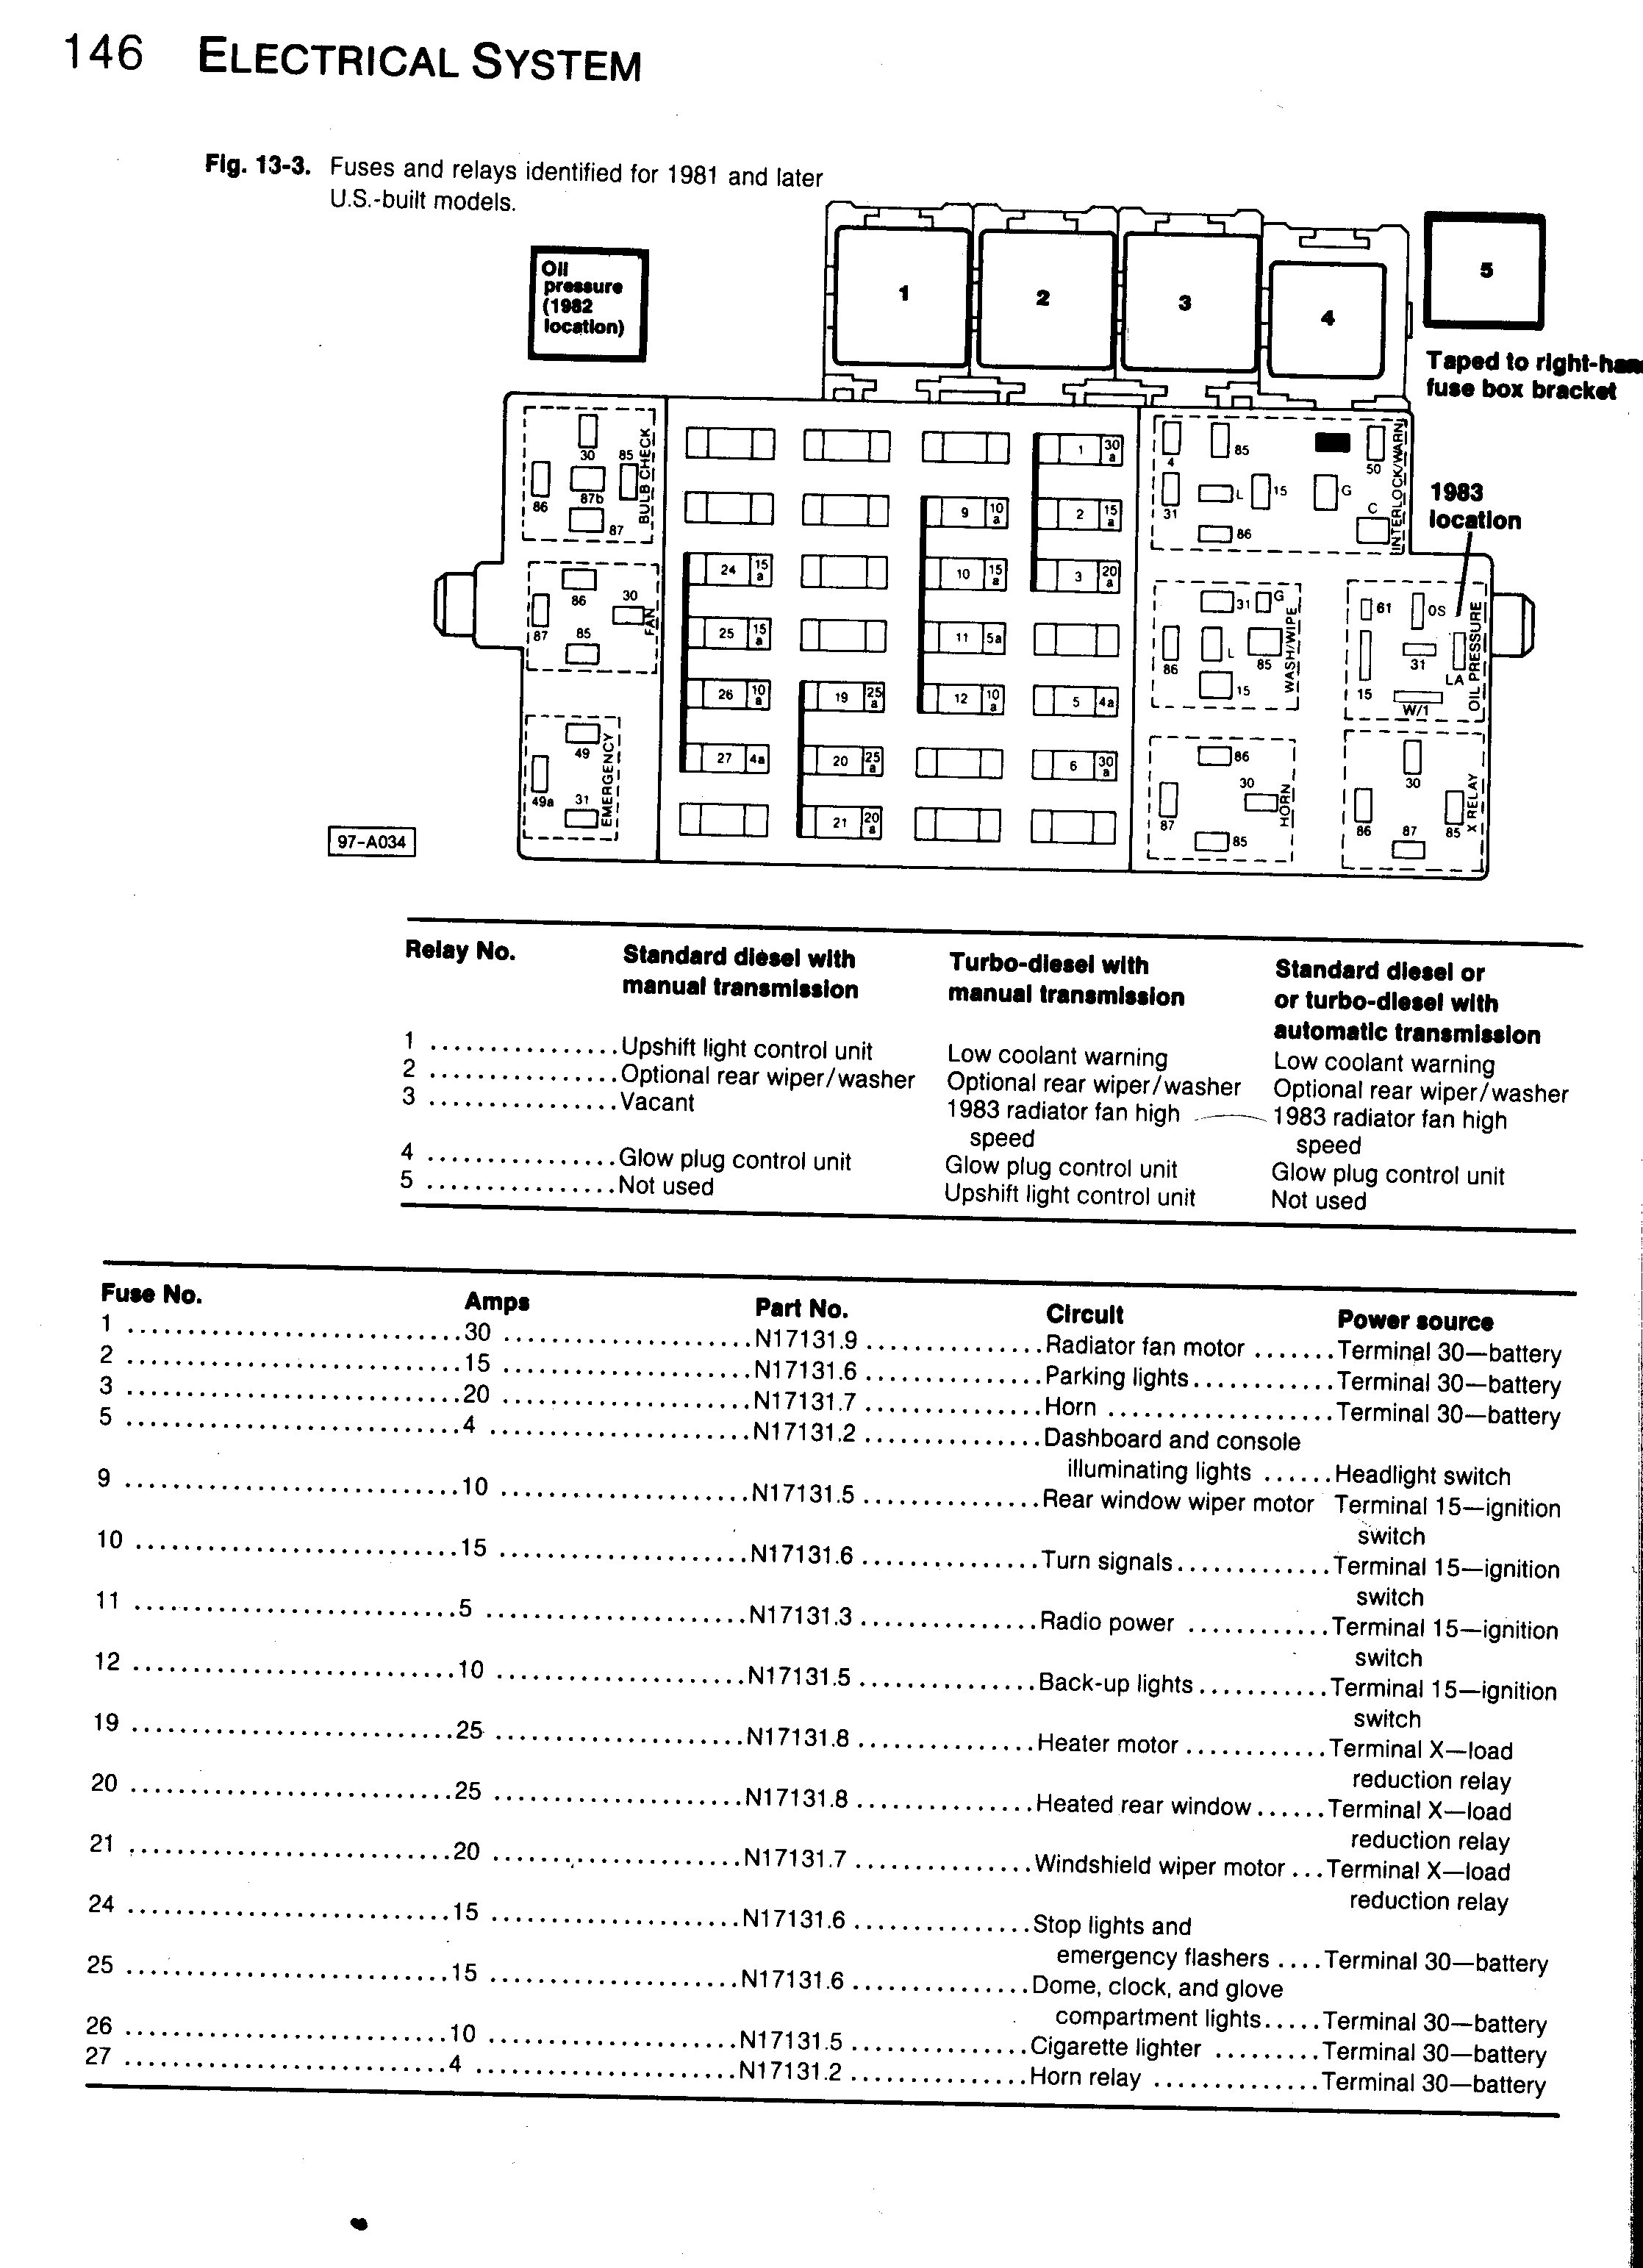 2007 Jeep Liberty Radio Wiring Diagram